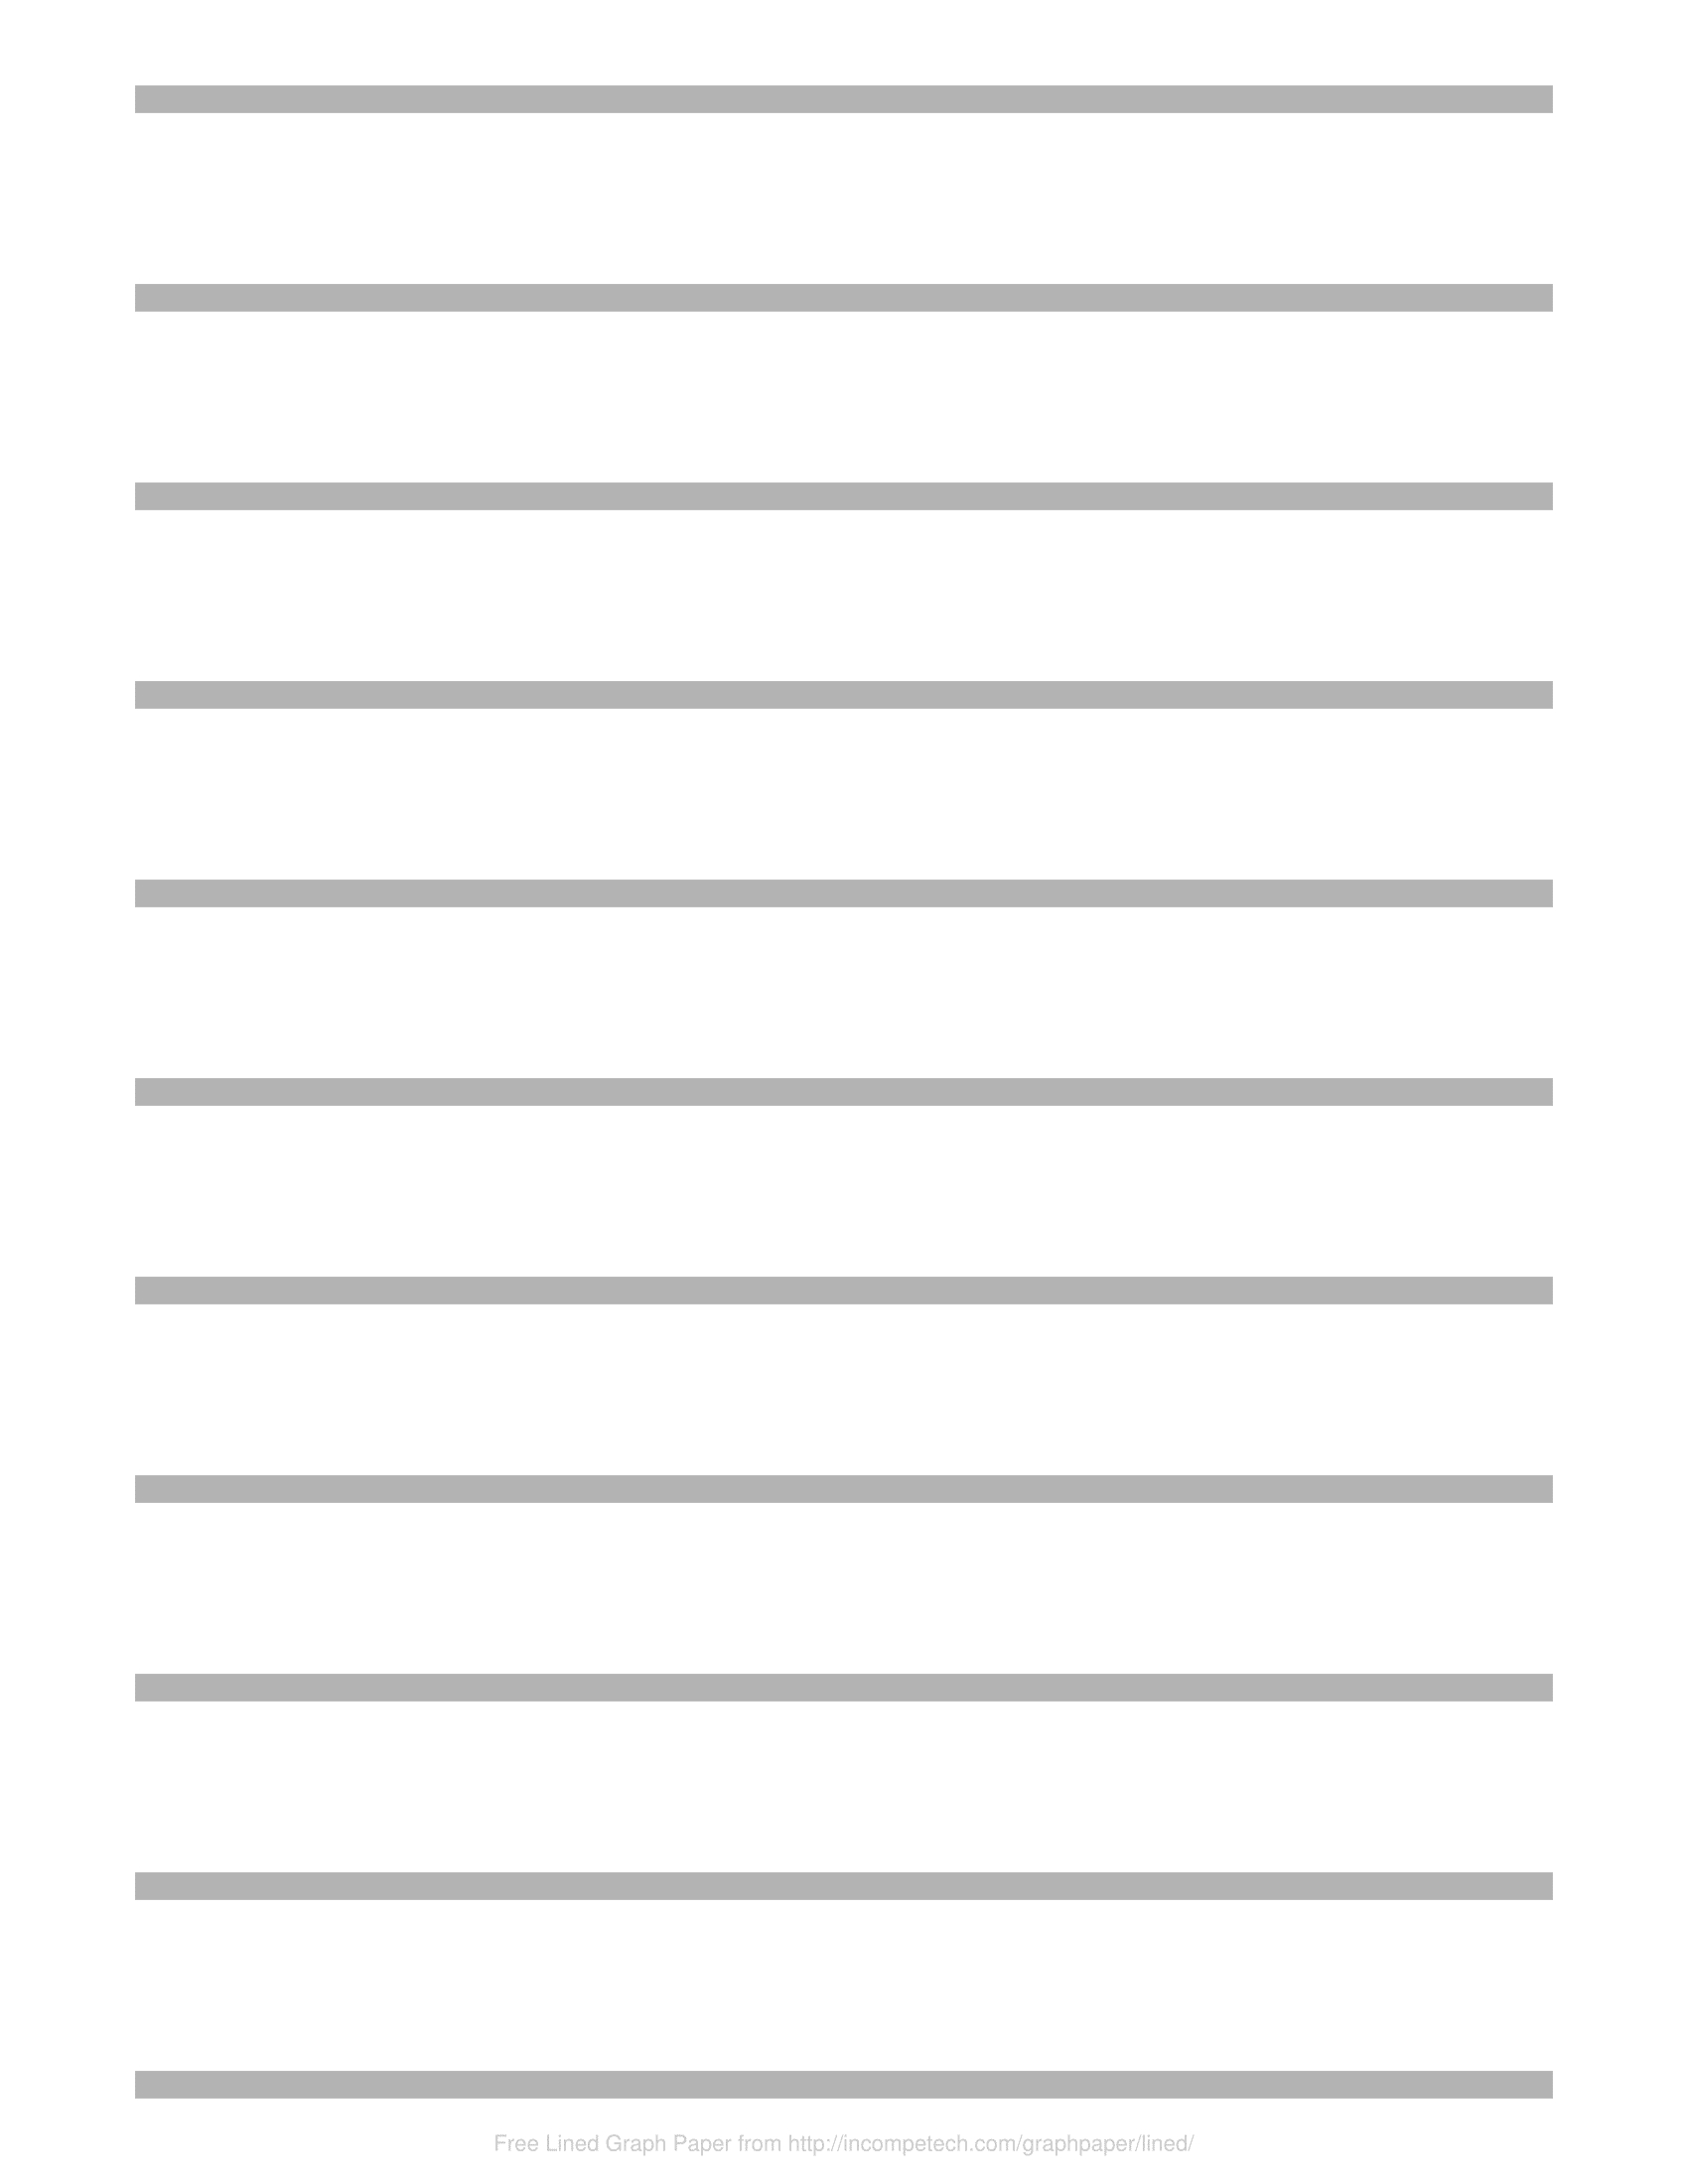 Free Online Graph Paper / Lined - Free Printable Lined Paper